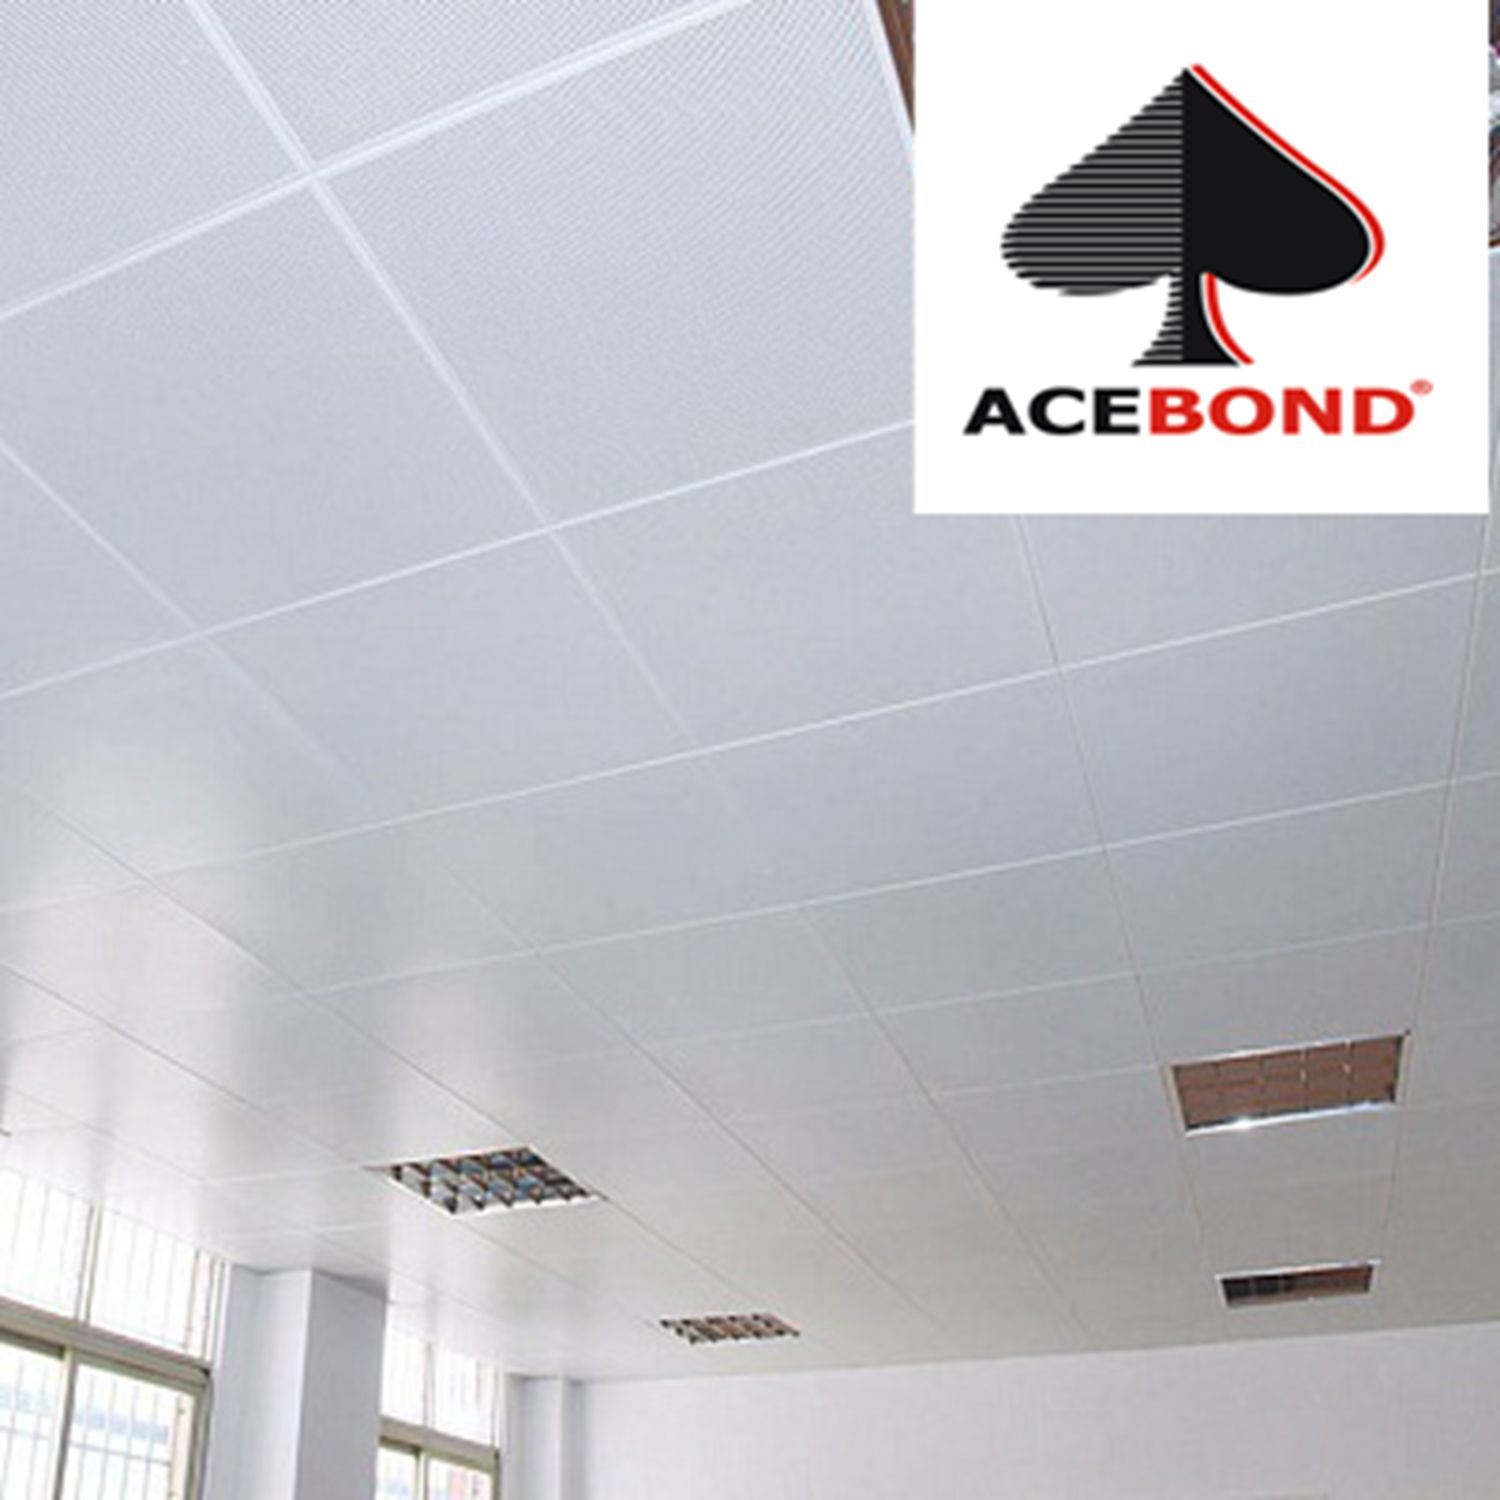 Fireproof suspended ceiling tiles pranksenders china latest building material for fireproof indoor aluminum dailygadgetfo Images